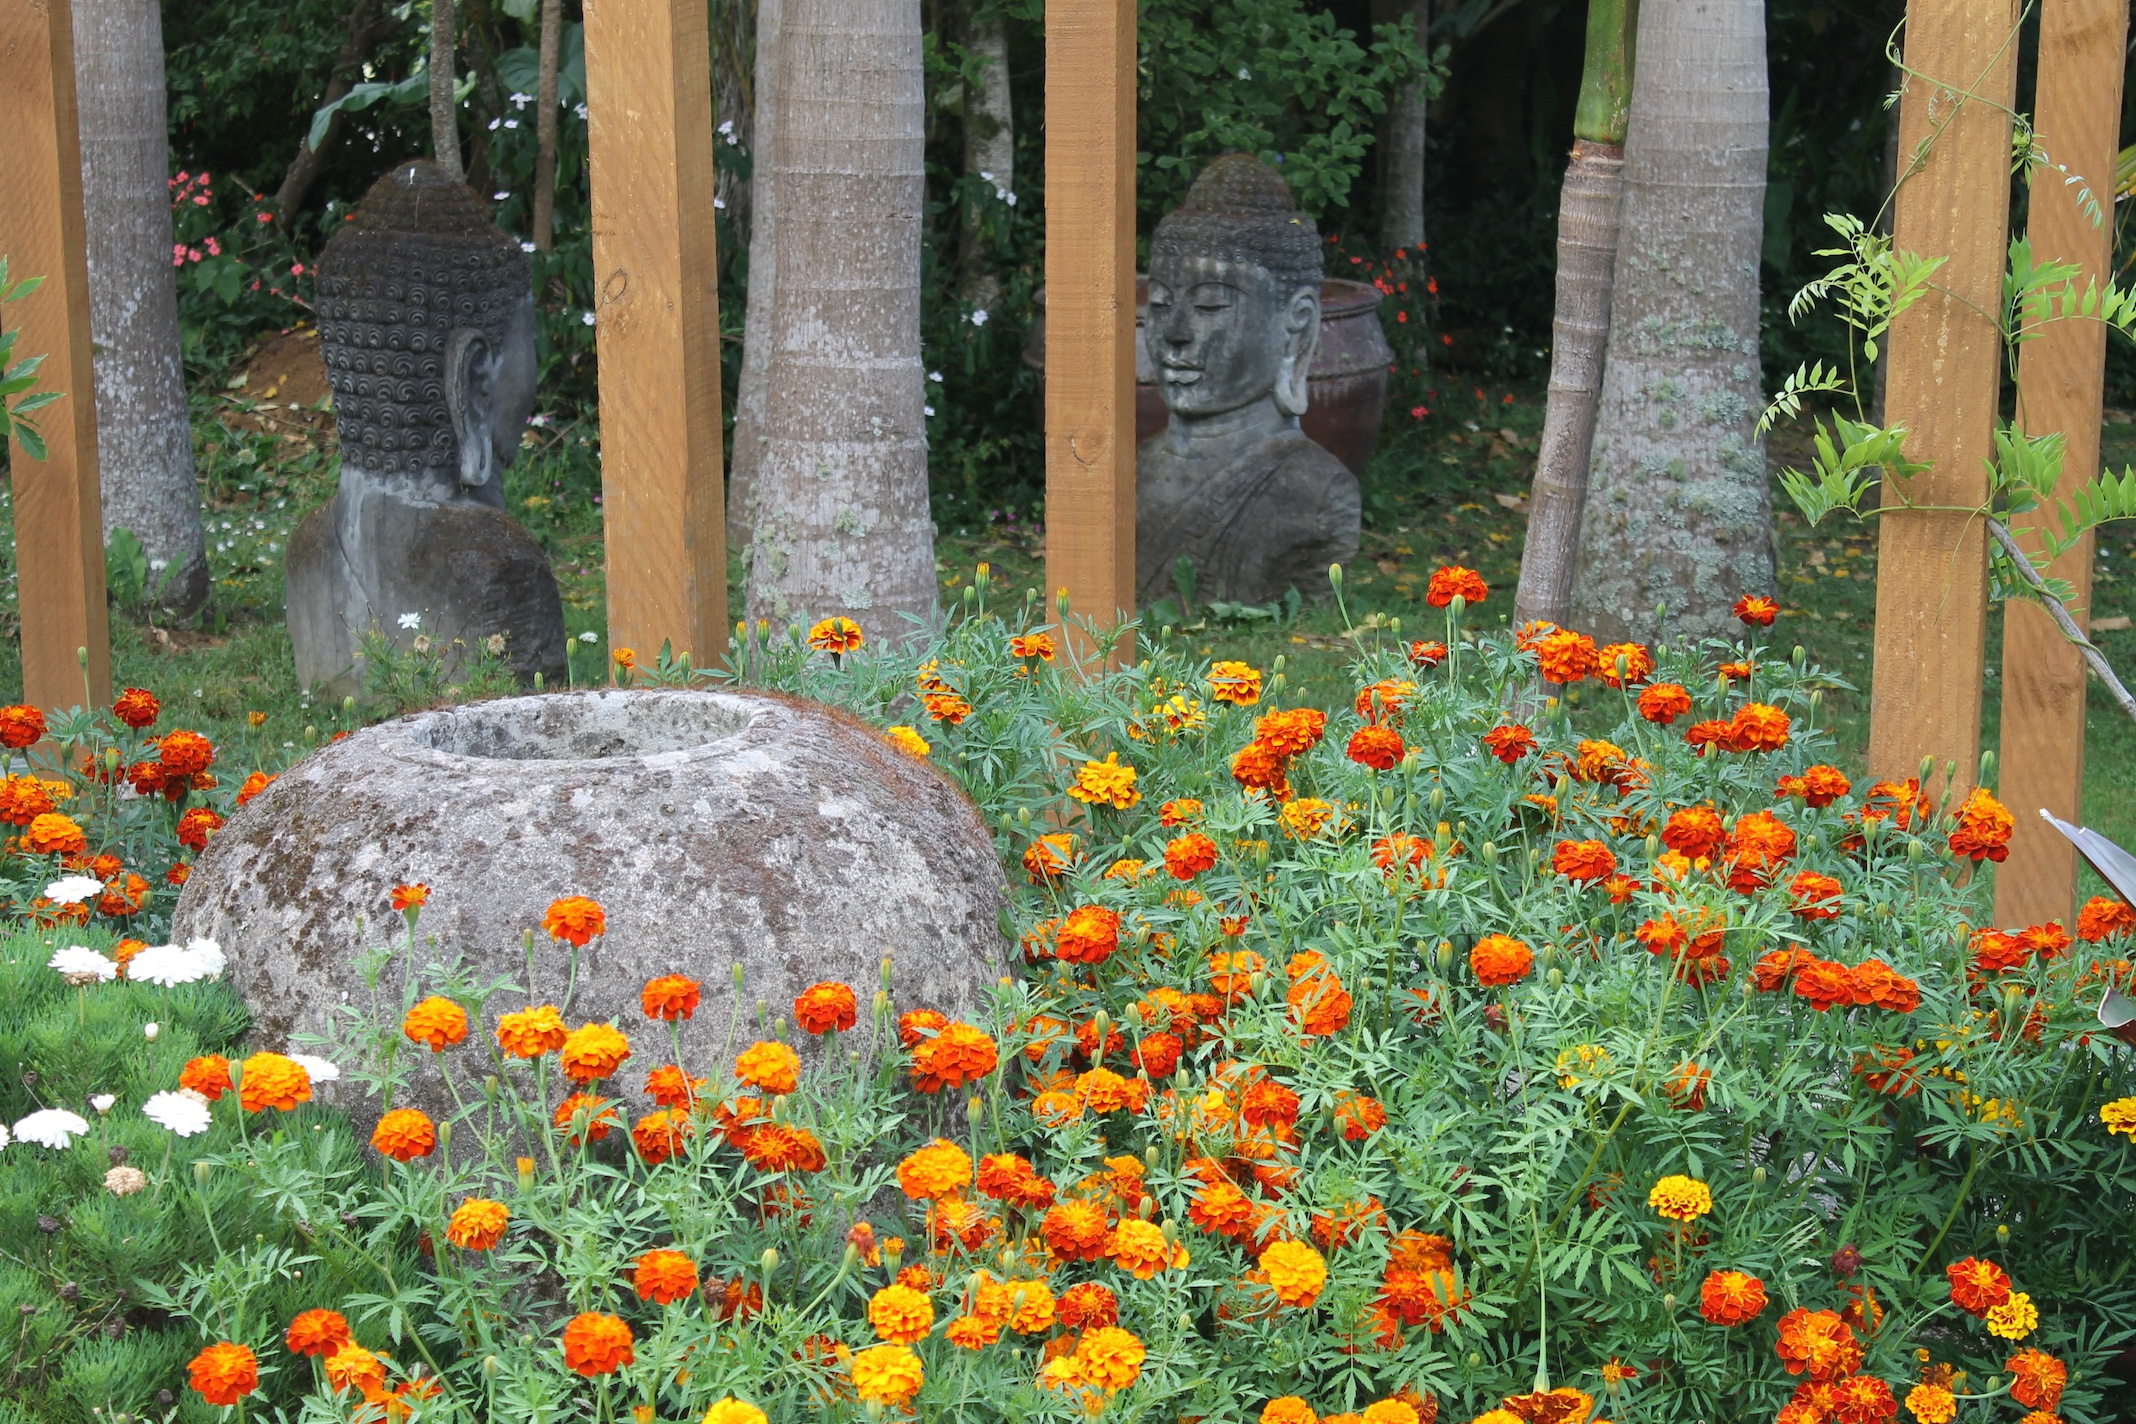 <CENTRE> MARIGOLDS BY TEWHARENUI AWHINA PATHWAY </CENTRE>